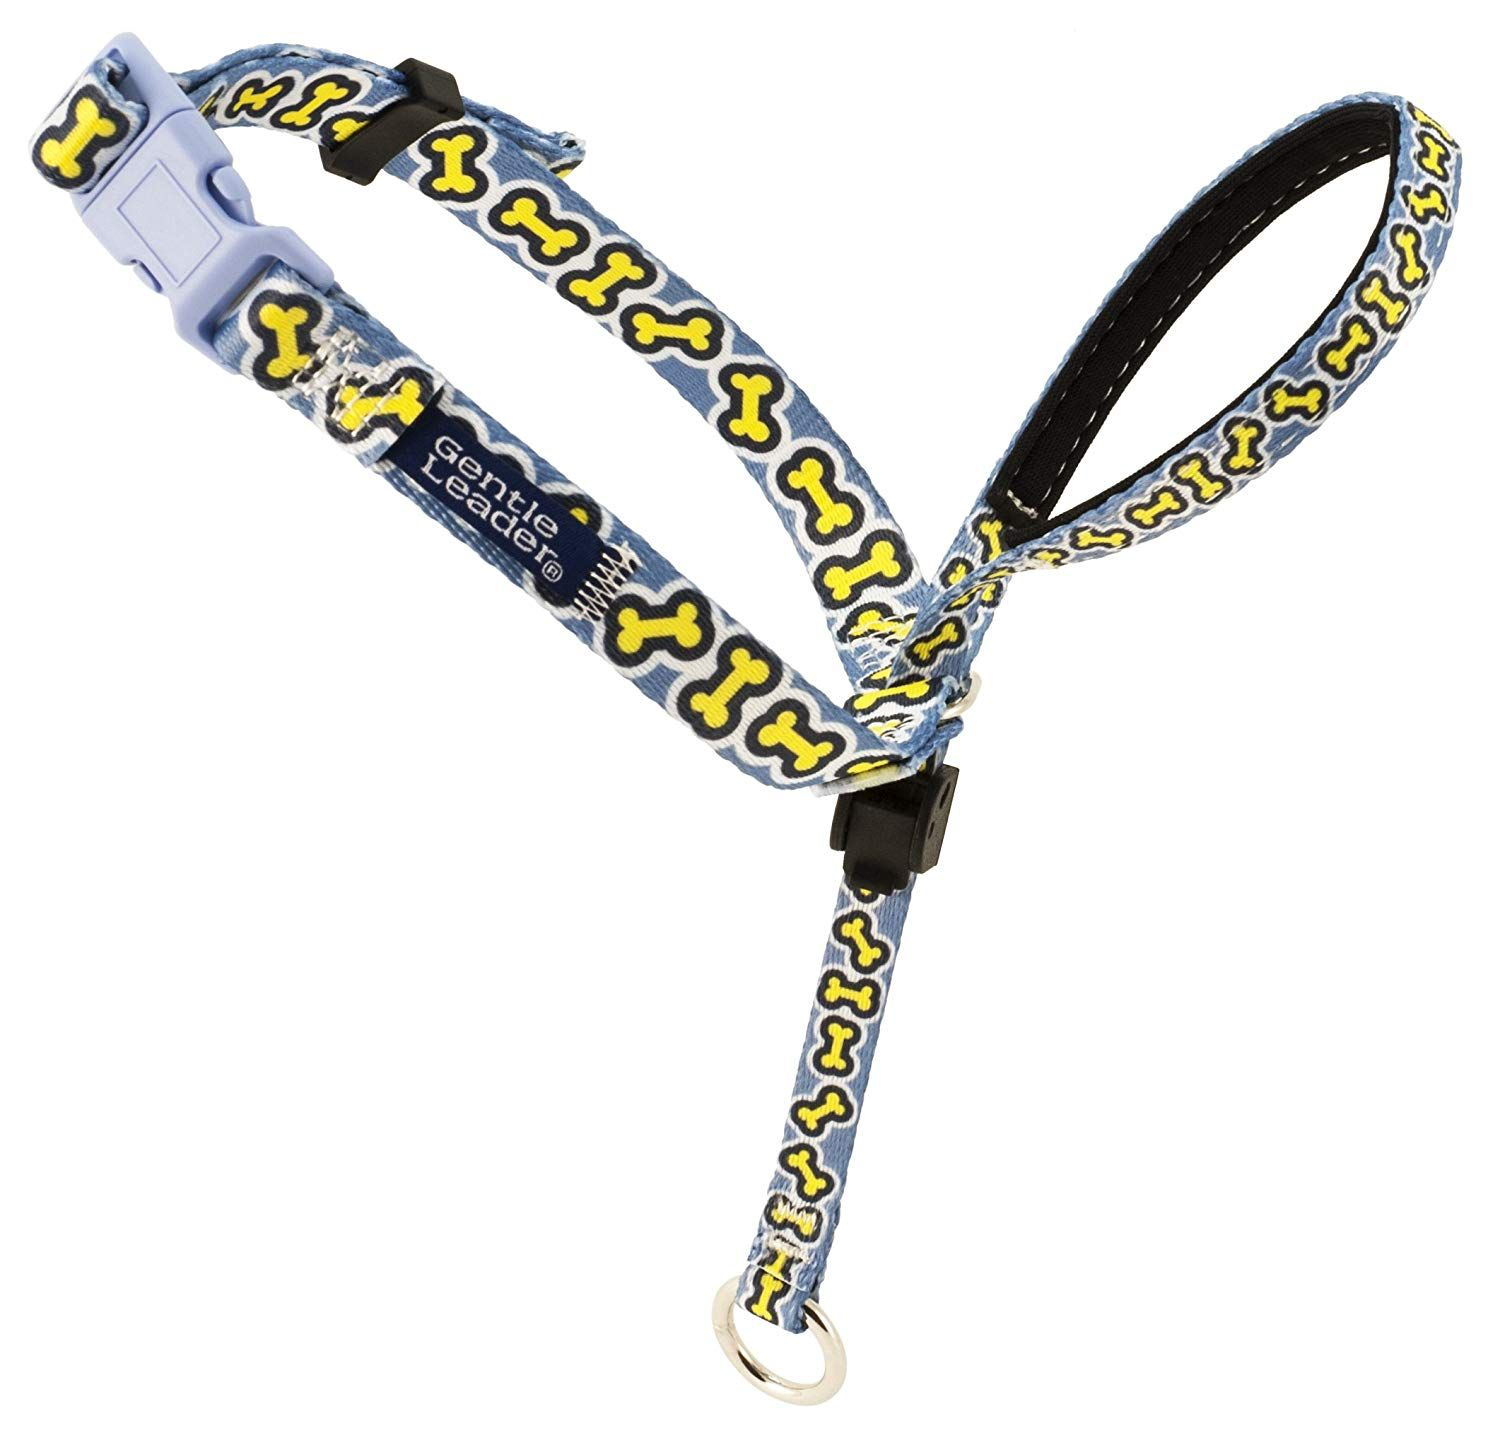 Petsafe Gentle Leader Chic Head Collar With Images Gentle Leader Organic Dog Food Collar And Leash